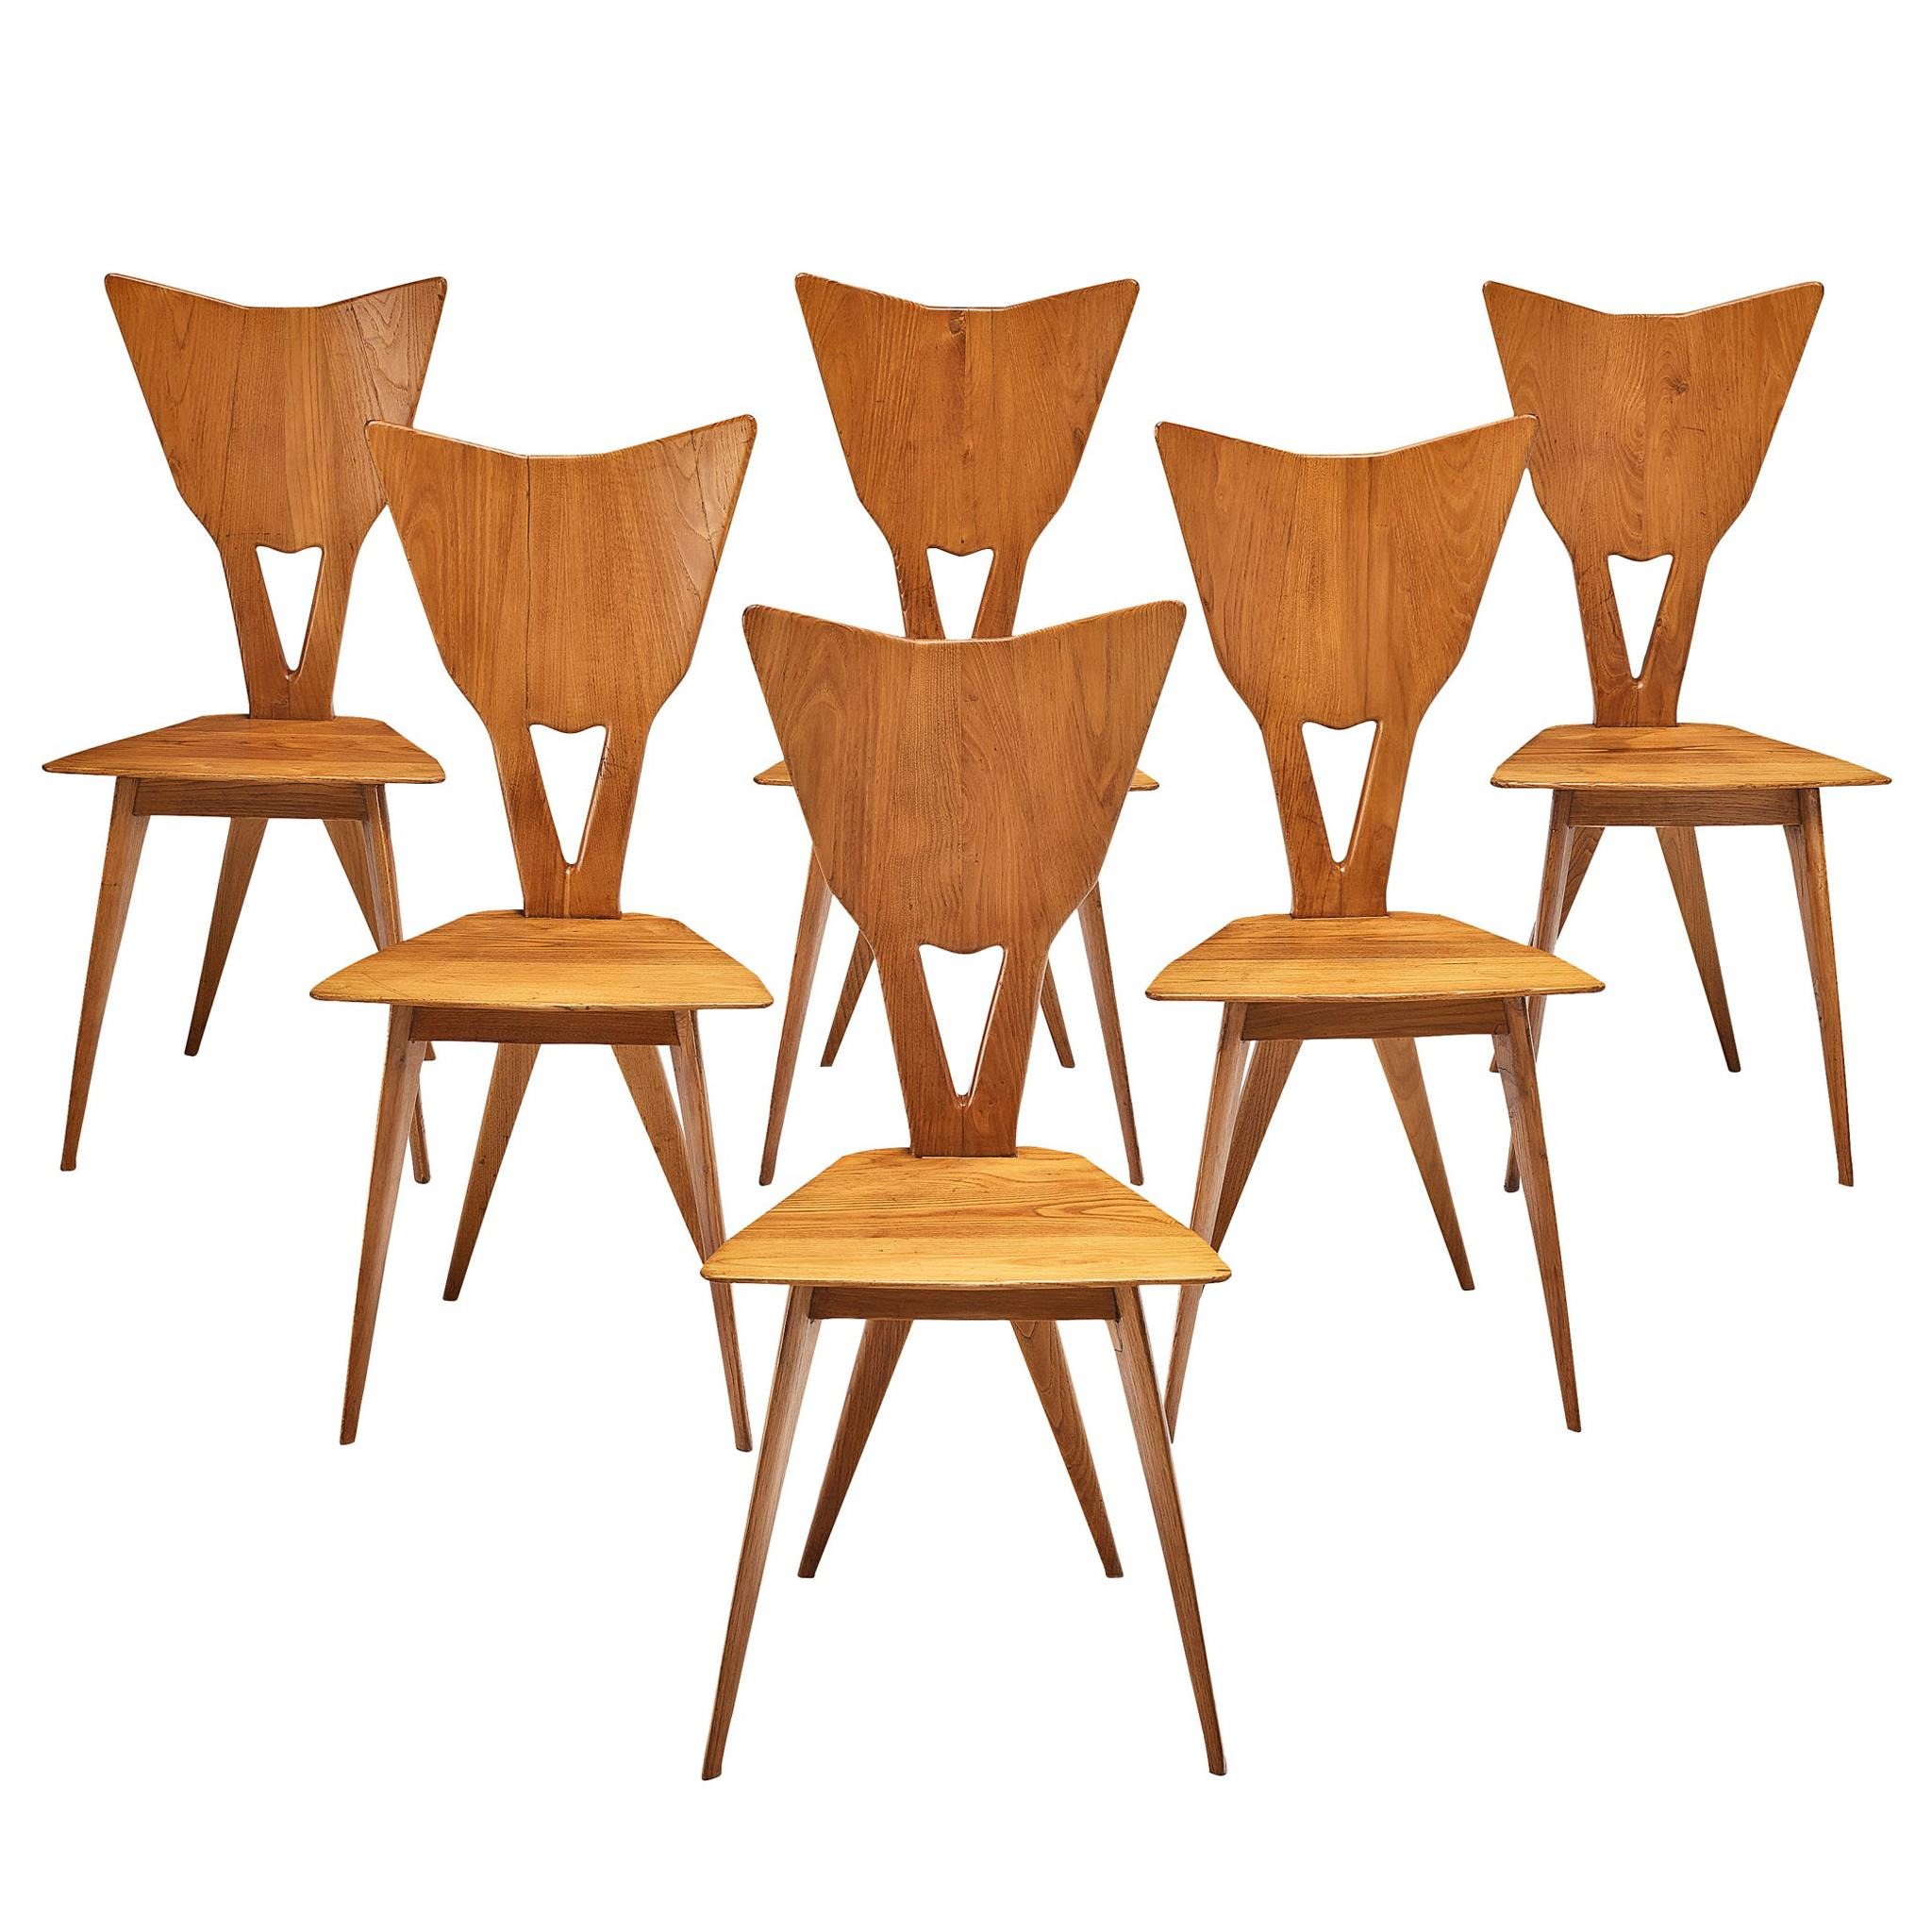 Set of 6 Elegant Italian Chairs in Stained Ash